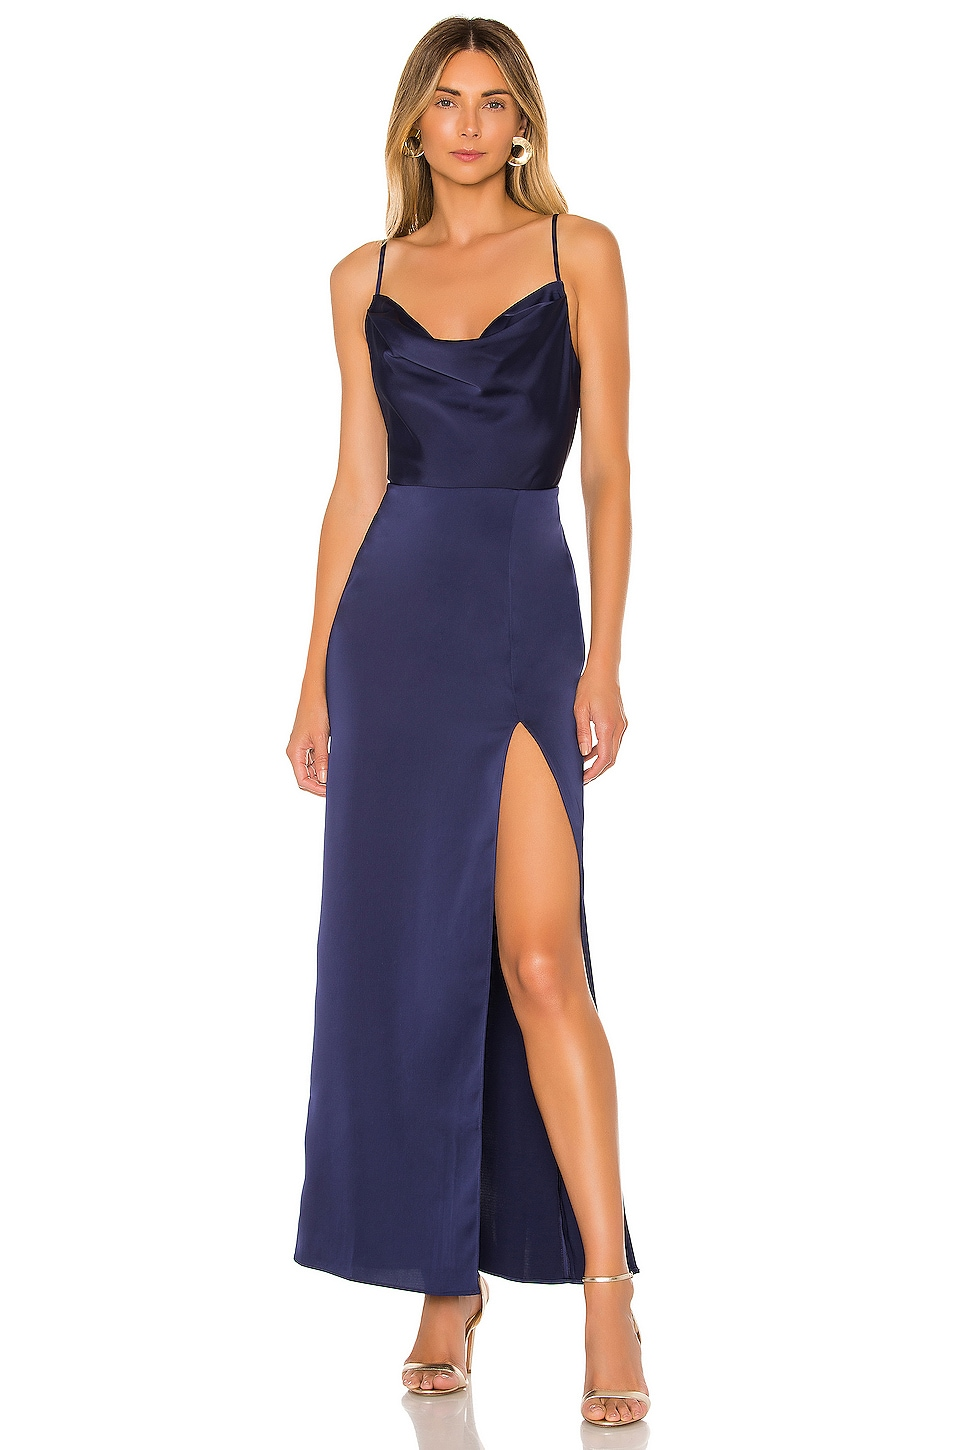 Lila Gown                   NBD                                                                                                                             CA$ 298.17 2